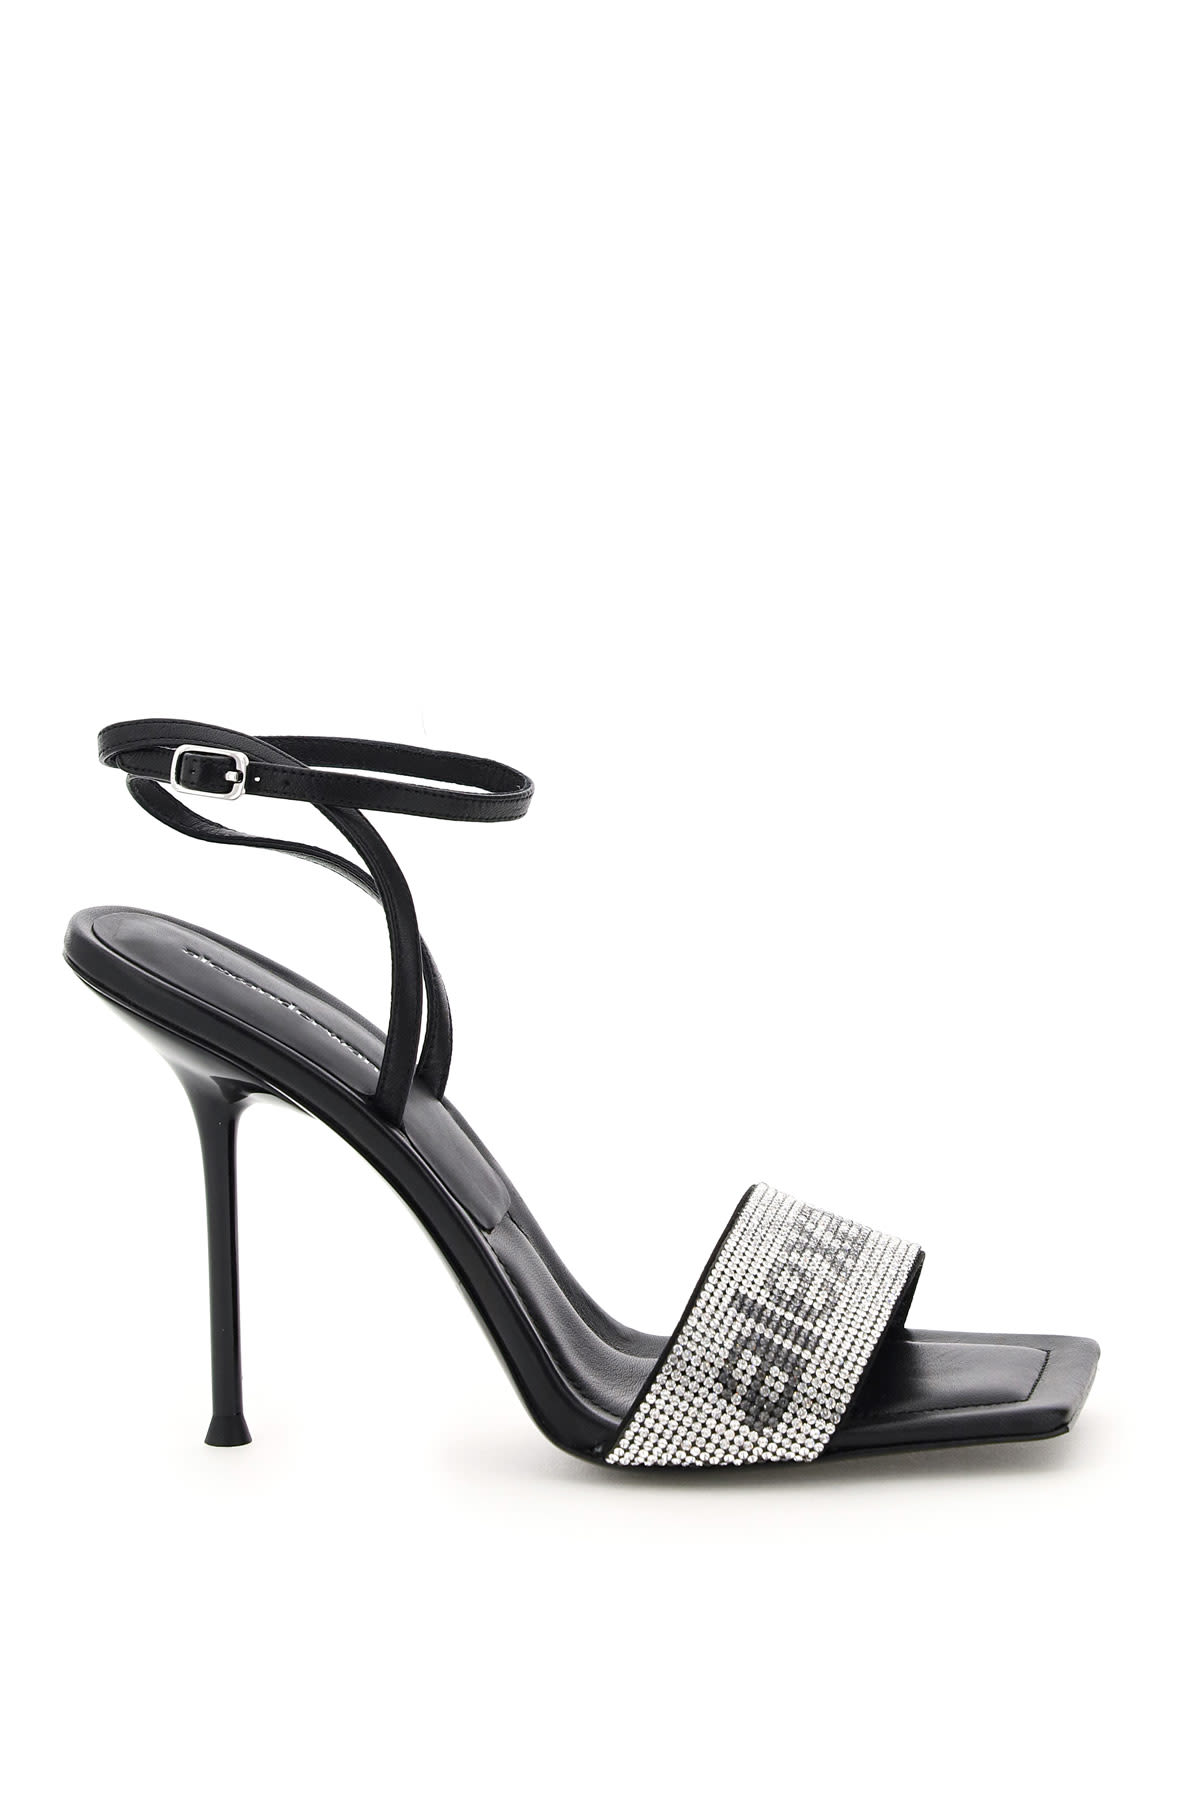 Alexander Wang Shoes JULIE SANDALS WITH CRYSTAL LOGO